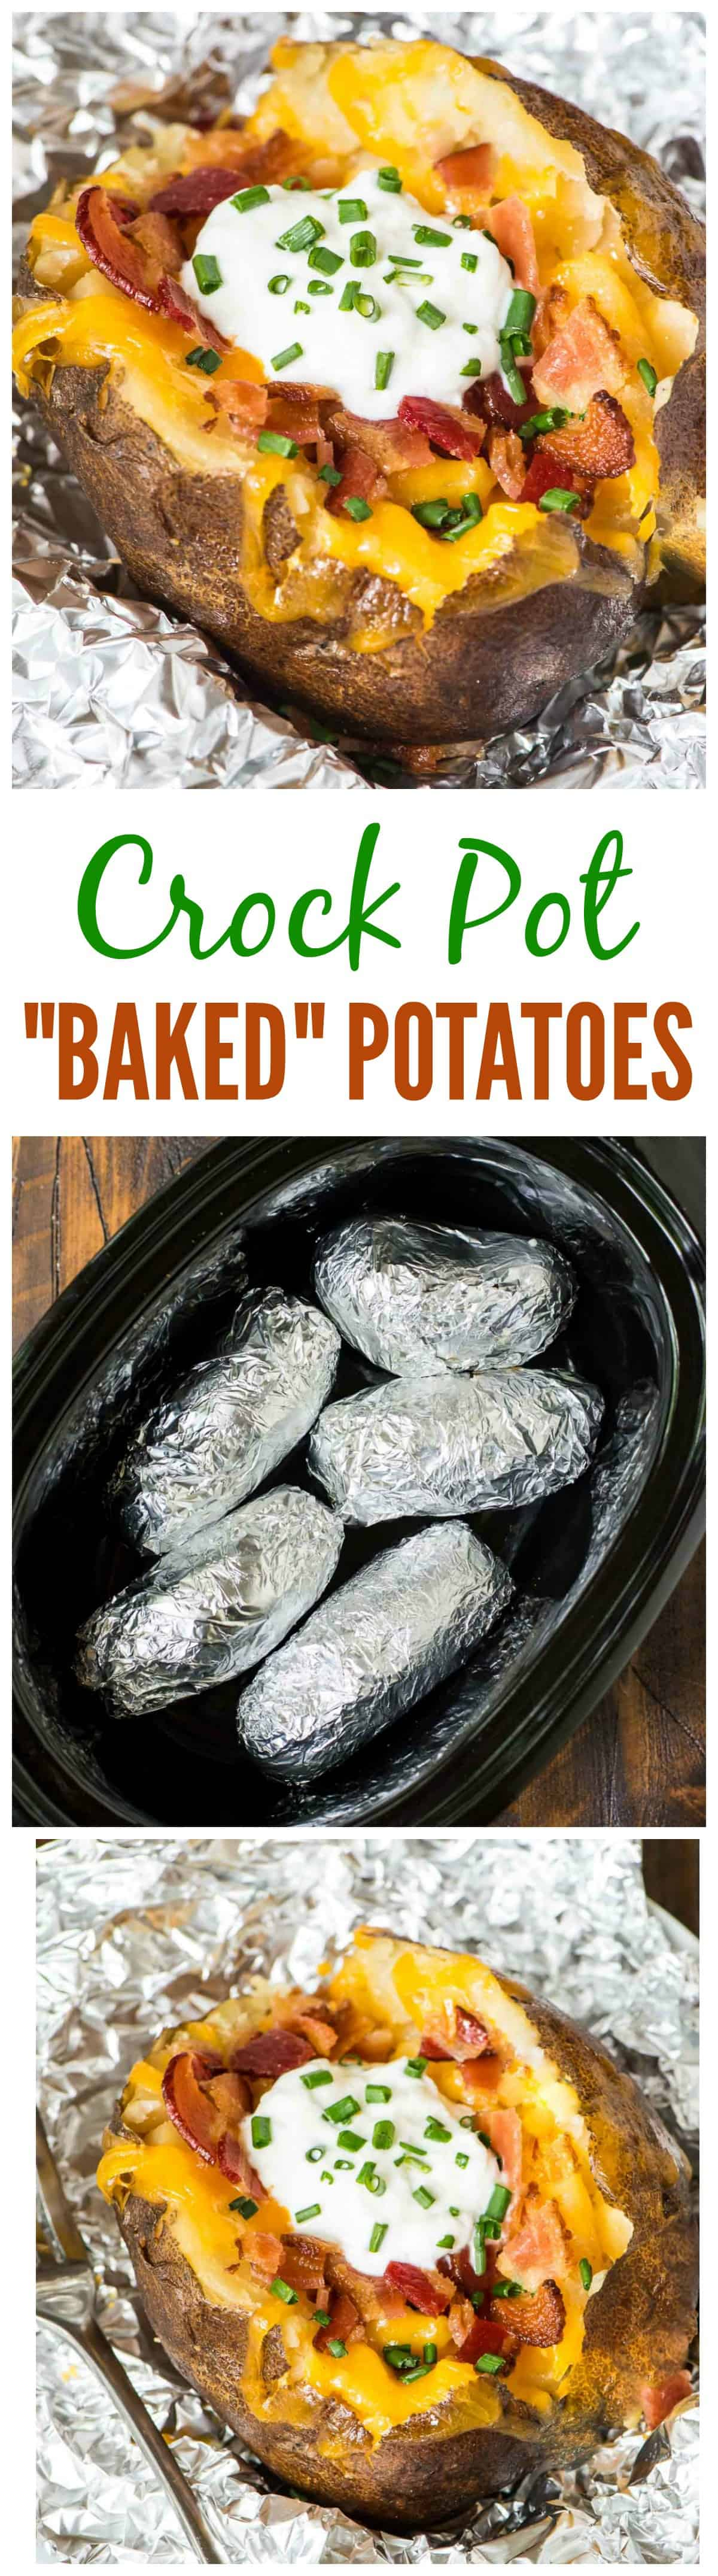 Crock Pot Baked Potatoes recipe — the easiest way to bake a potato is in your slow cooker! Easy method with no clean up. Great for weeknight dinners or to feed a crowd.  @wellplated #crockpot #slowcooker #sides #recipe